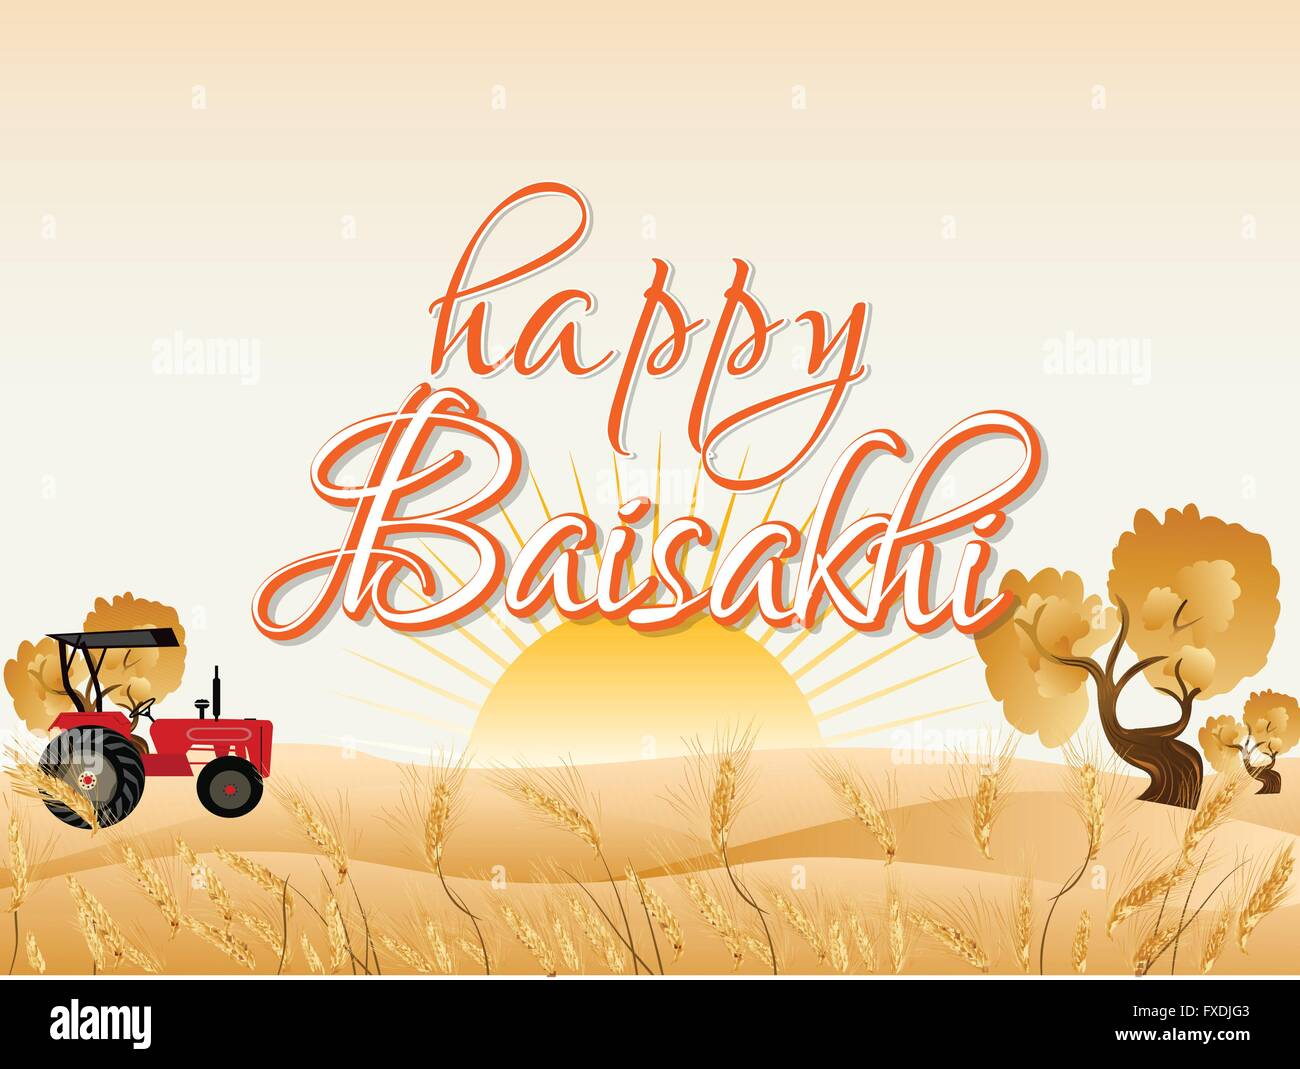 Happy Baisakhi Abstract - Stock Vector